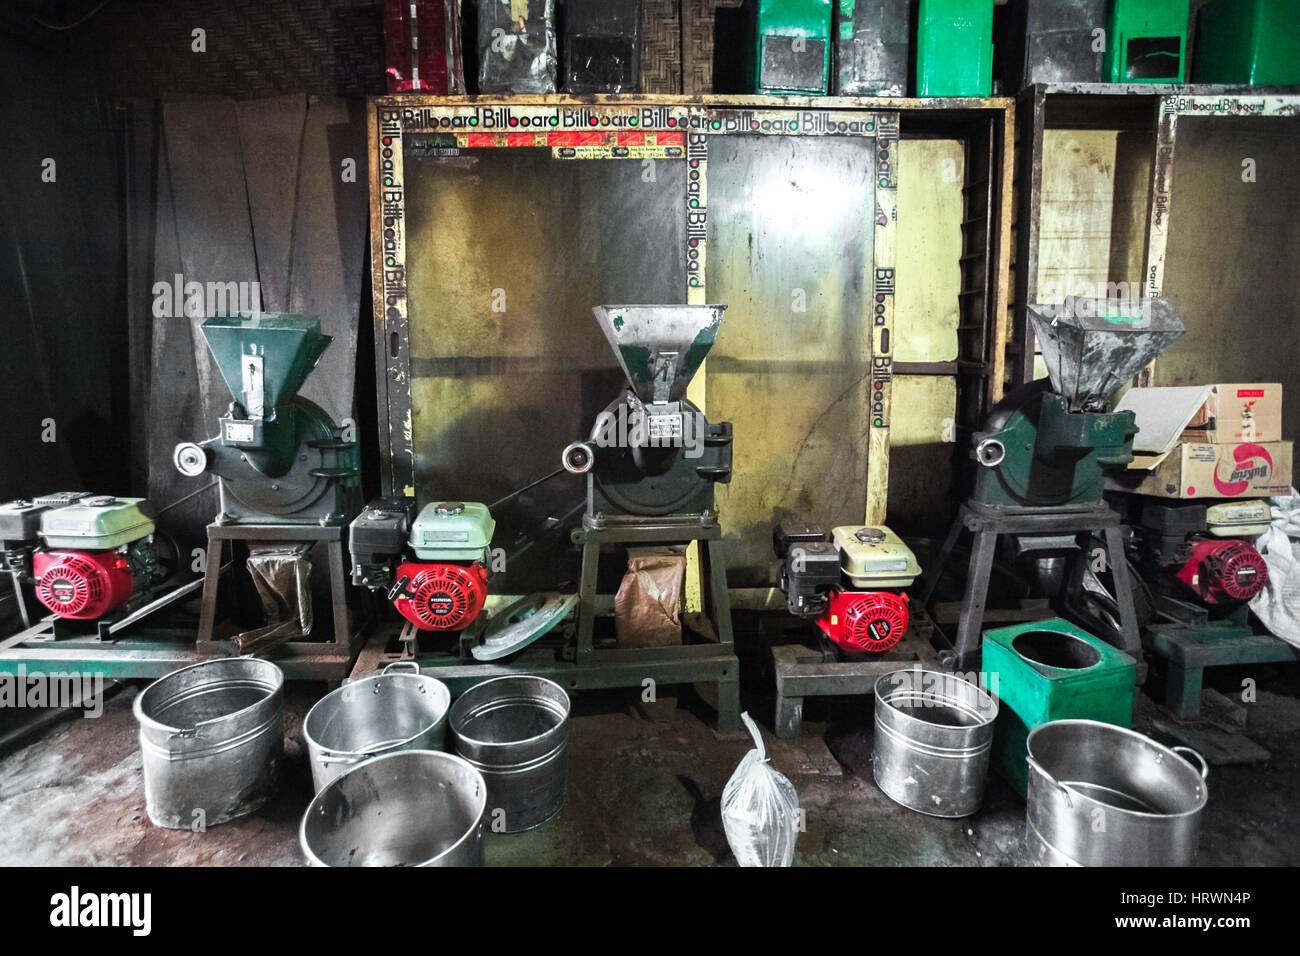 Old-fashioned coffee grinders and pans inside an Asian coffee roasting warehouse. - Stock Image